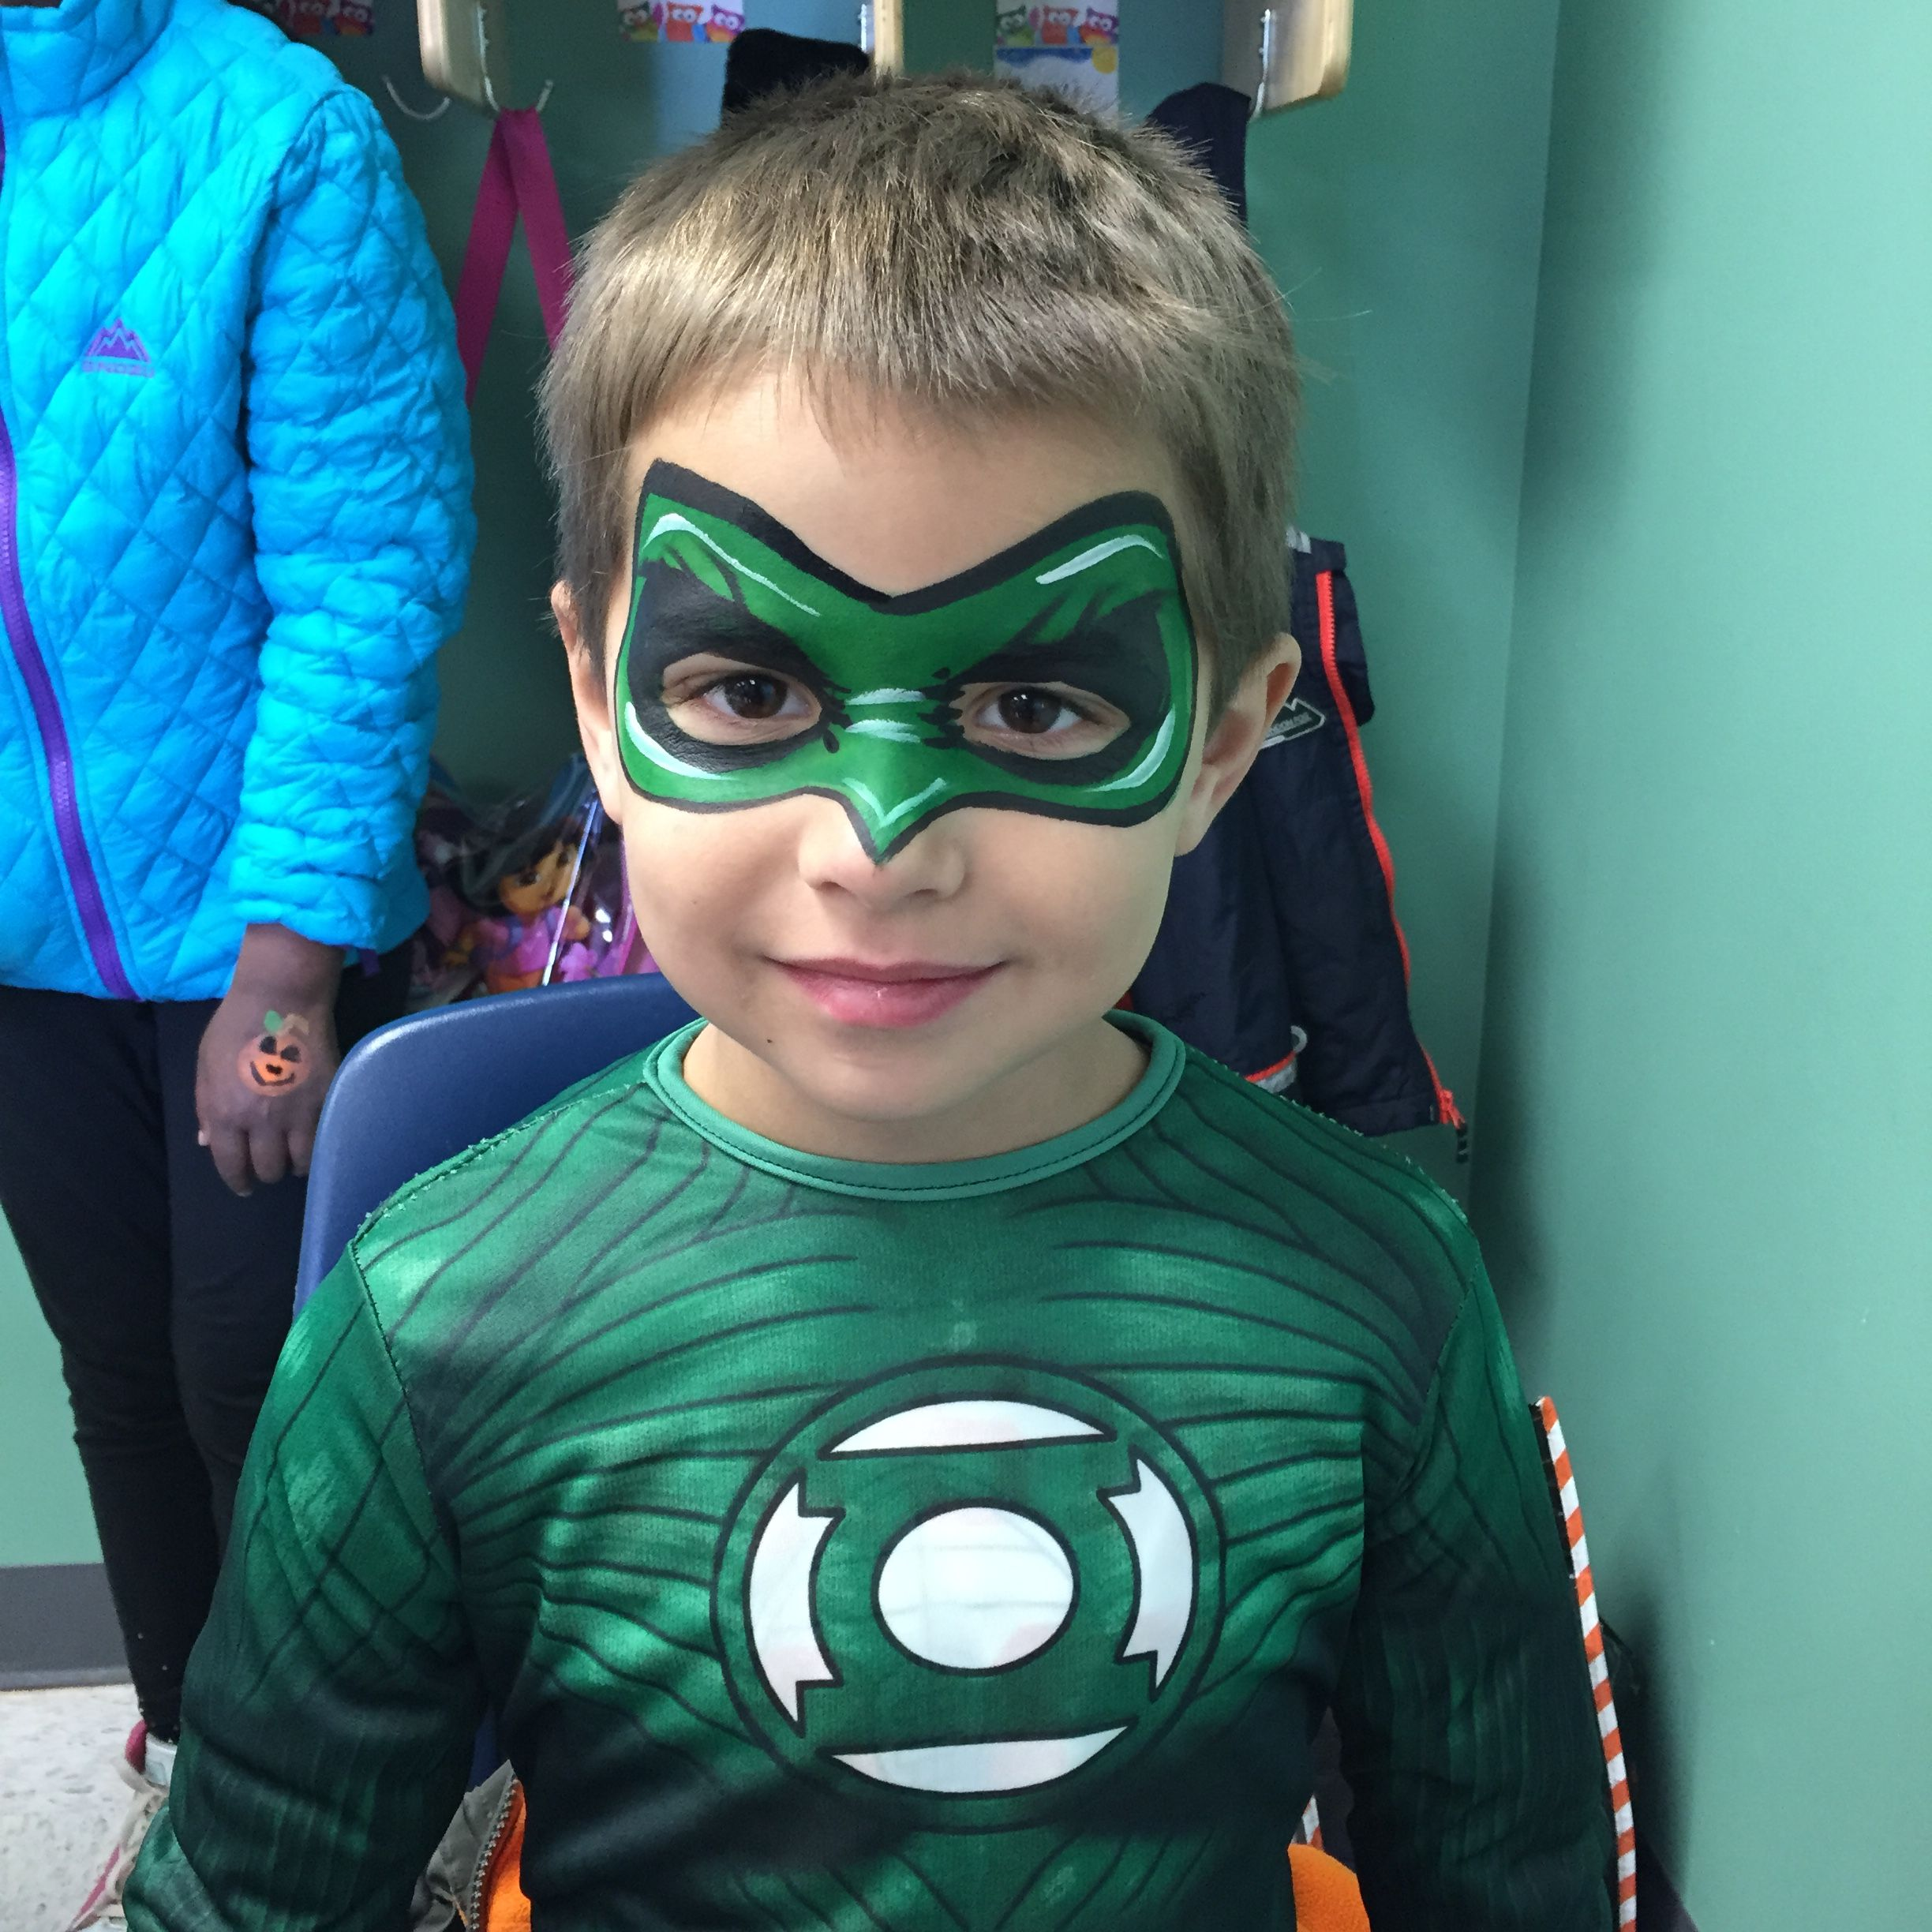 Green Lantern face painting A Face Painting by Marli